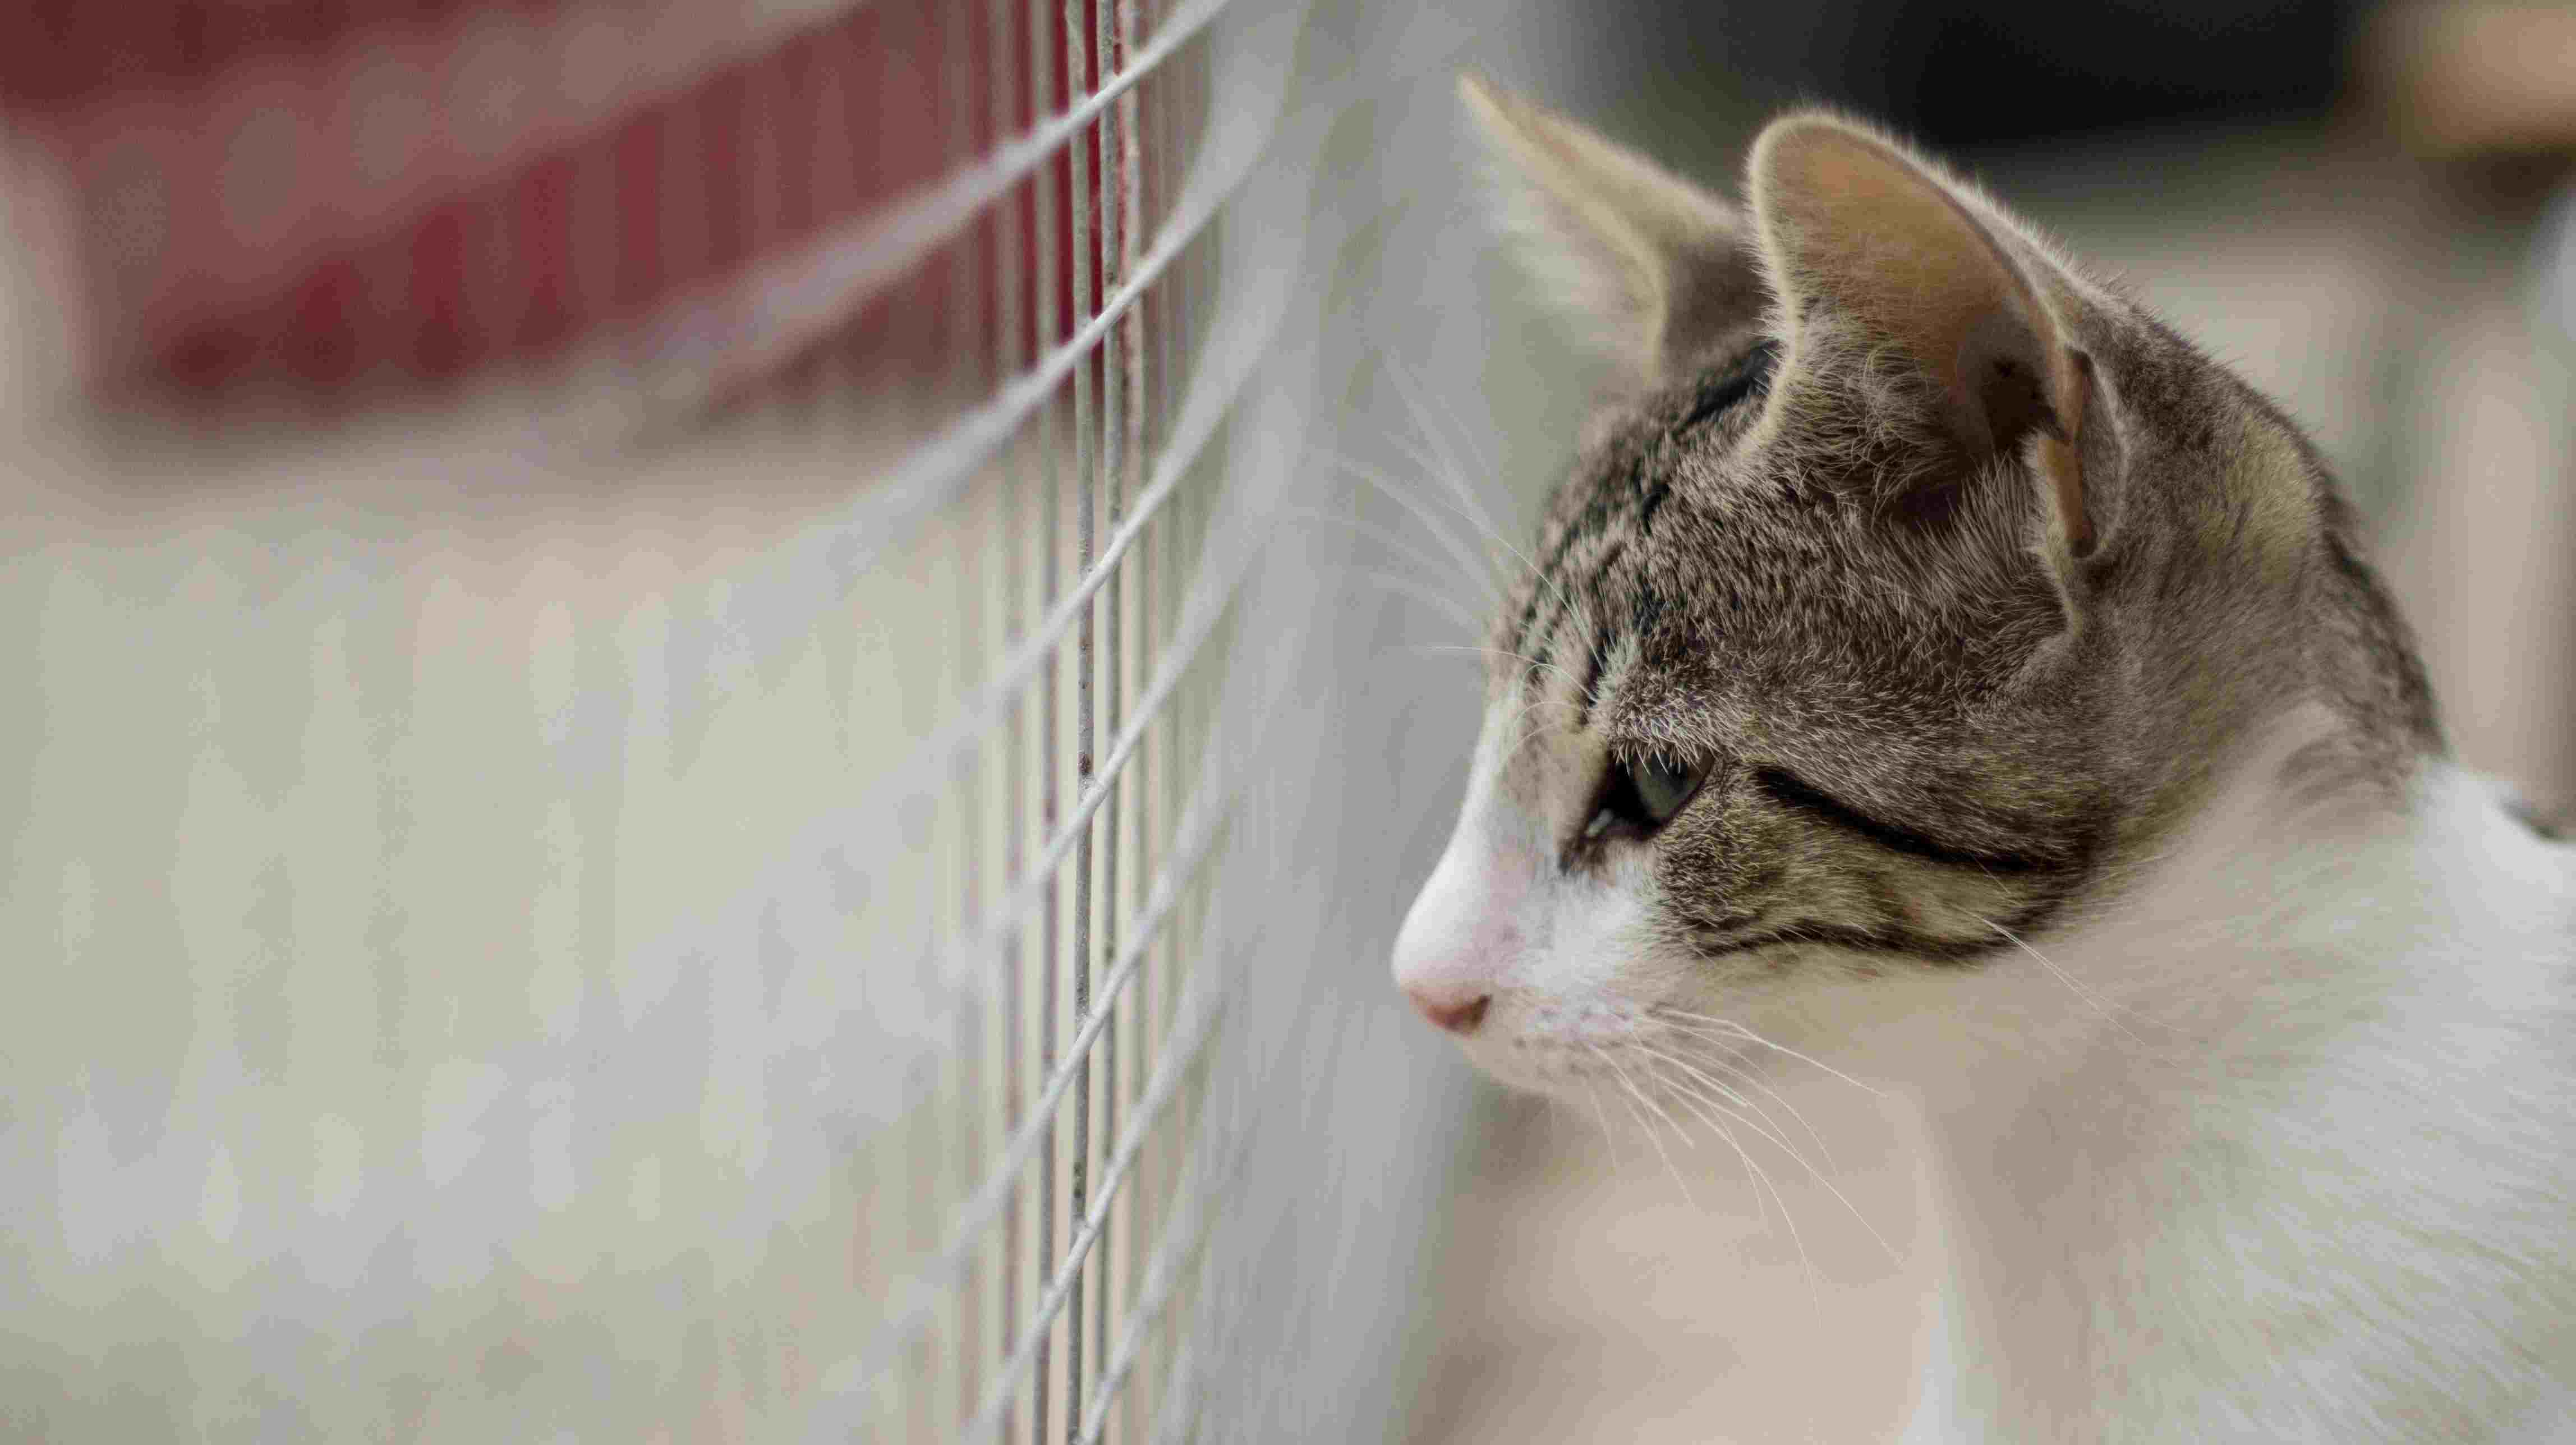 Close-Up Of Cat For Sale In Shelter